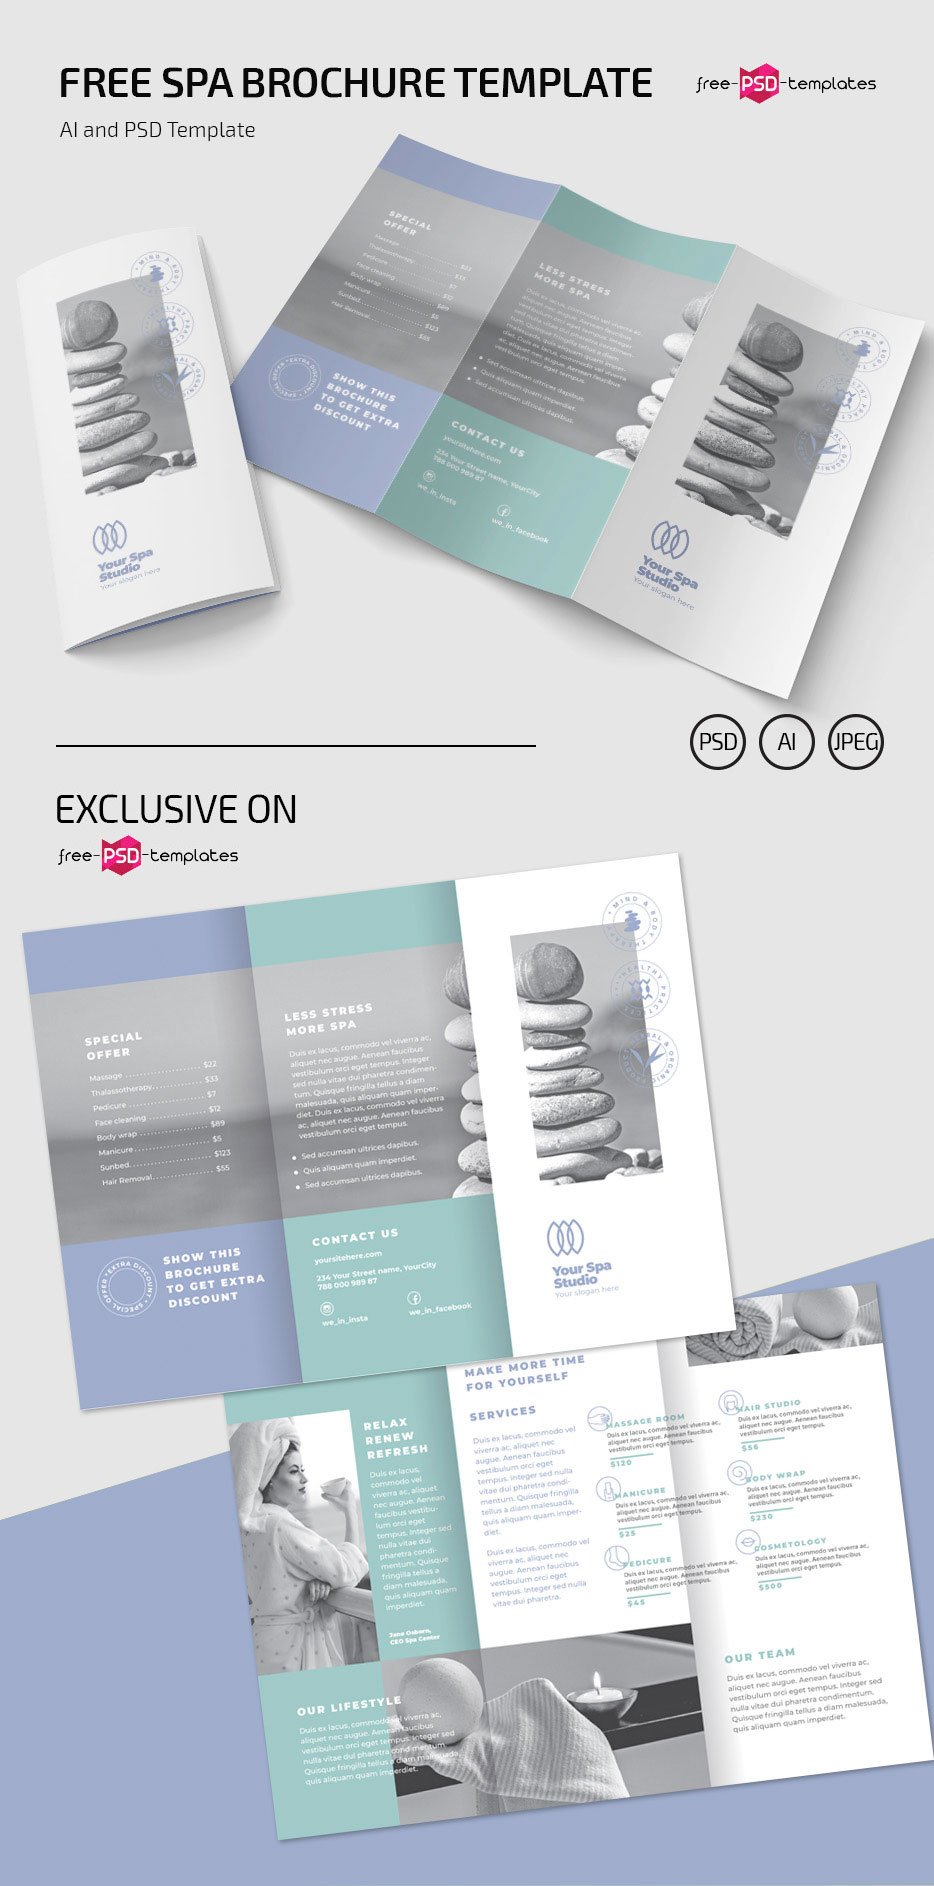 Free Spa Brochure Templates